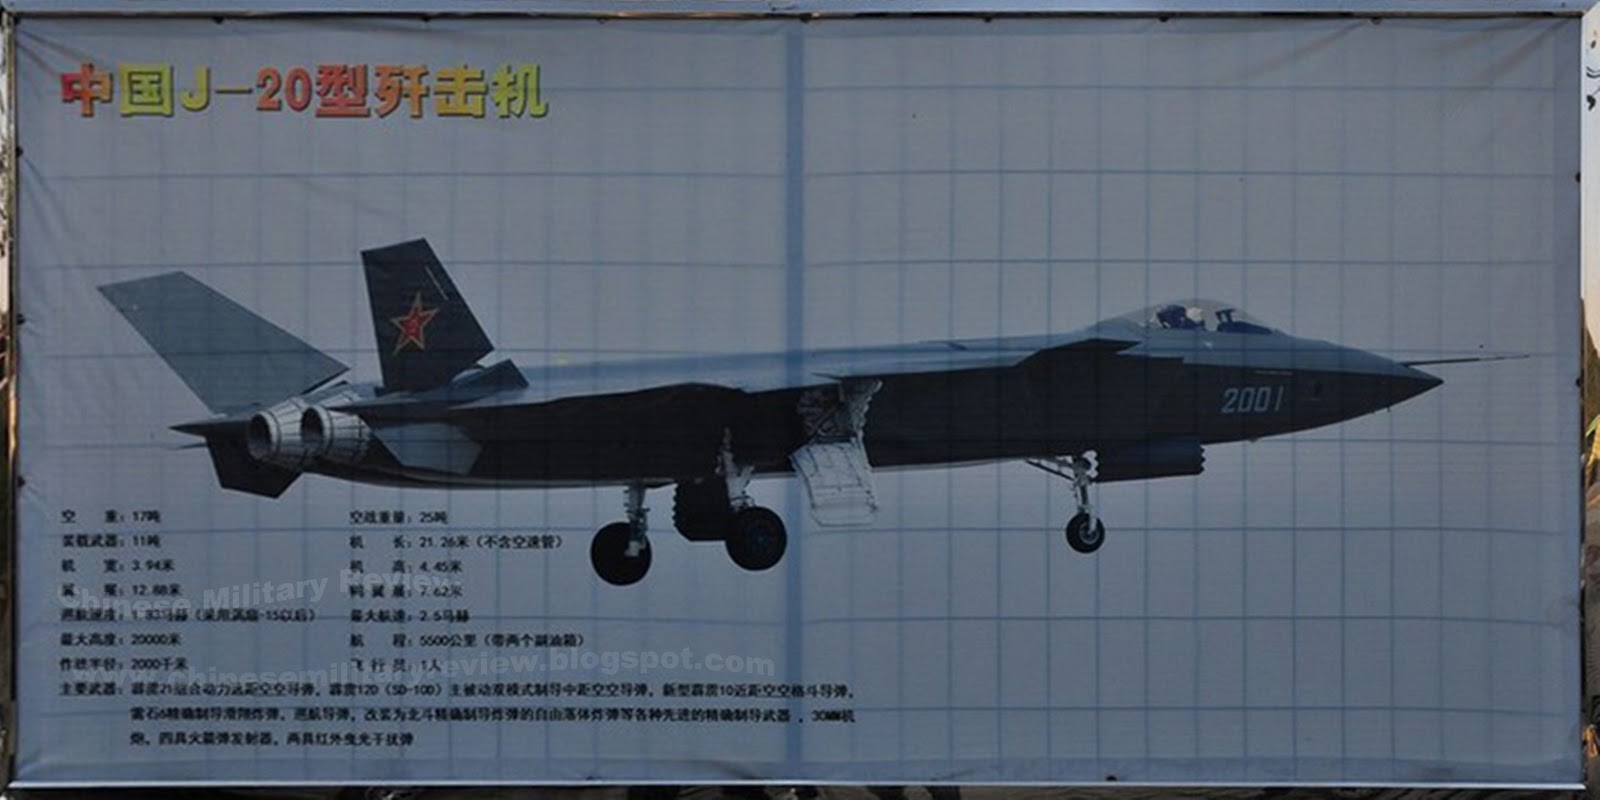 http://1.bp.blogspot.com/-Fo0_NIwP0Ms/Tucj9-EA0CI/AAAAAAAAGVA/E9lH9vMmE8E/s1600/J-20+Mighty+Dragon++specifications+details+information+brochure+Chengdu+J-20+fifth+generation+stealth%252C+twin-engine+fighter+aircraft+prototype+People%2527s+Liberation+Army+Air+Force++OPERATIONAL+weapons+aam+bvr+miss.jpg